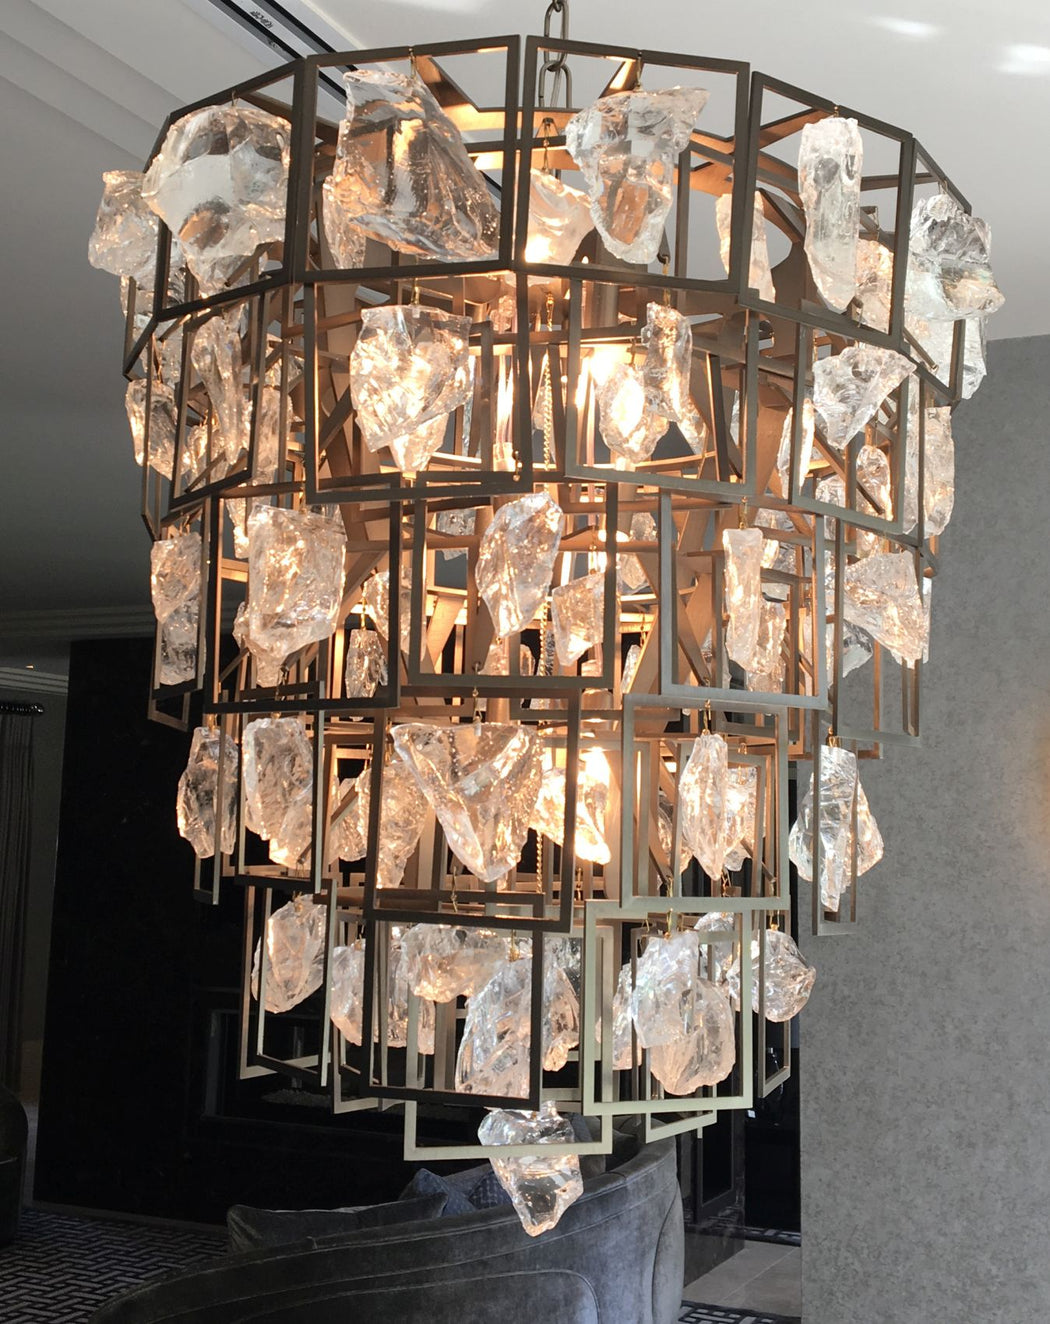 Large modern bespoke chandelier with Murano glass or rock crystal